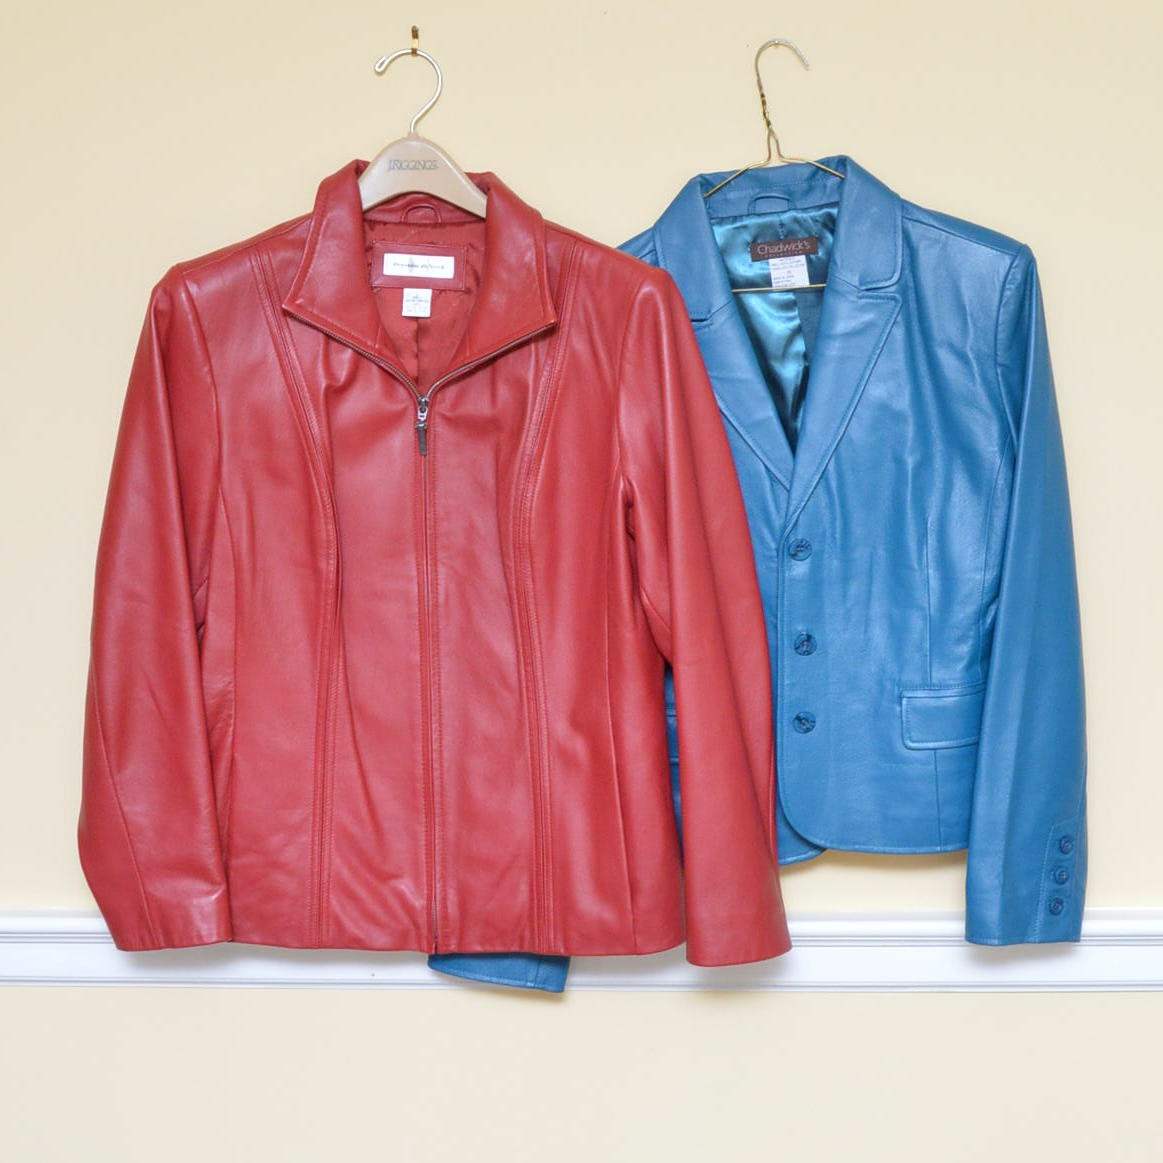 Women's Leather Coats Including Preston & York and Chadwick's